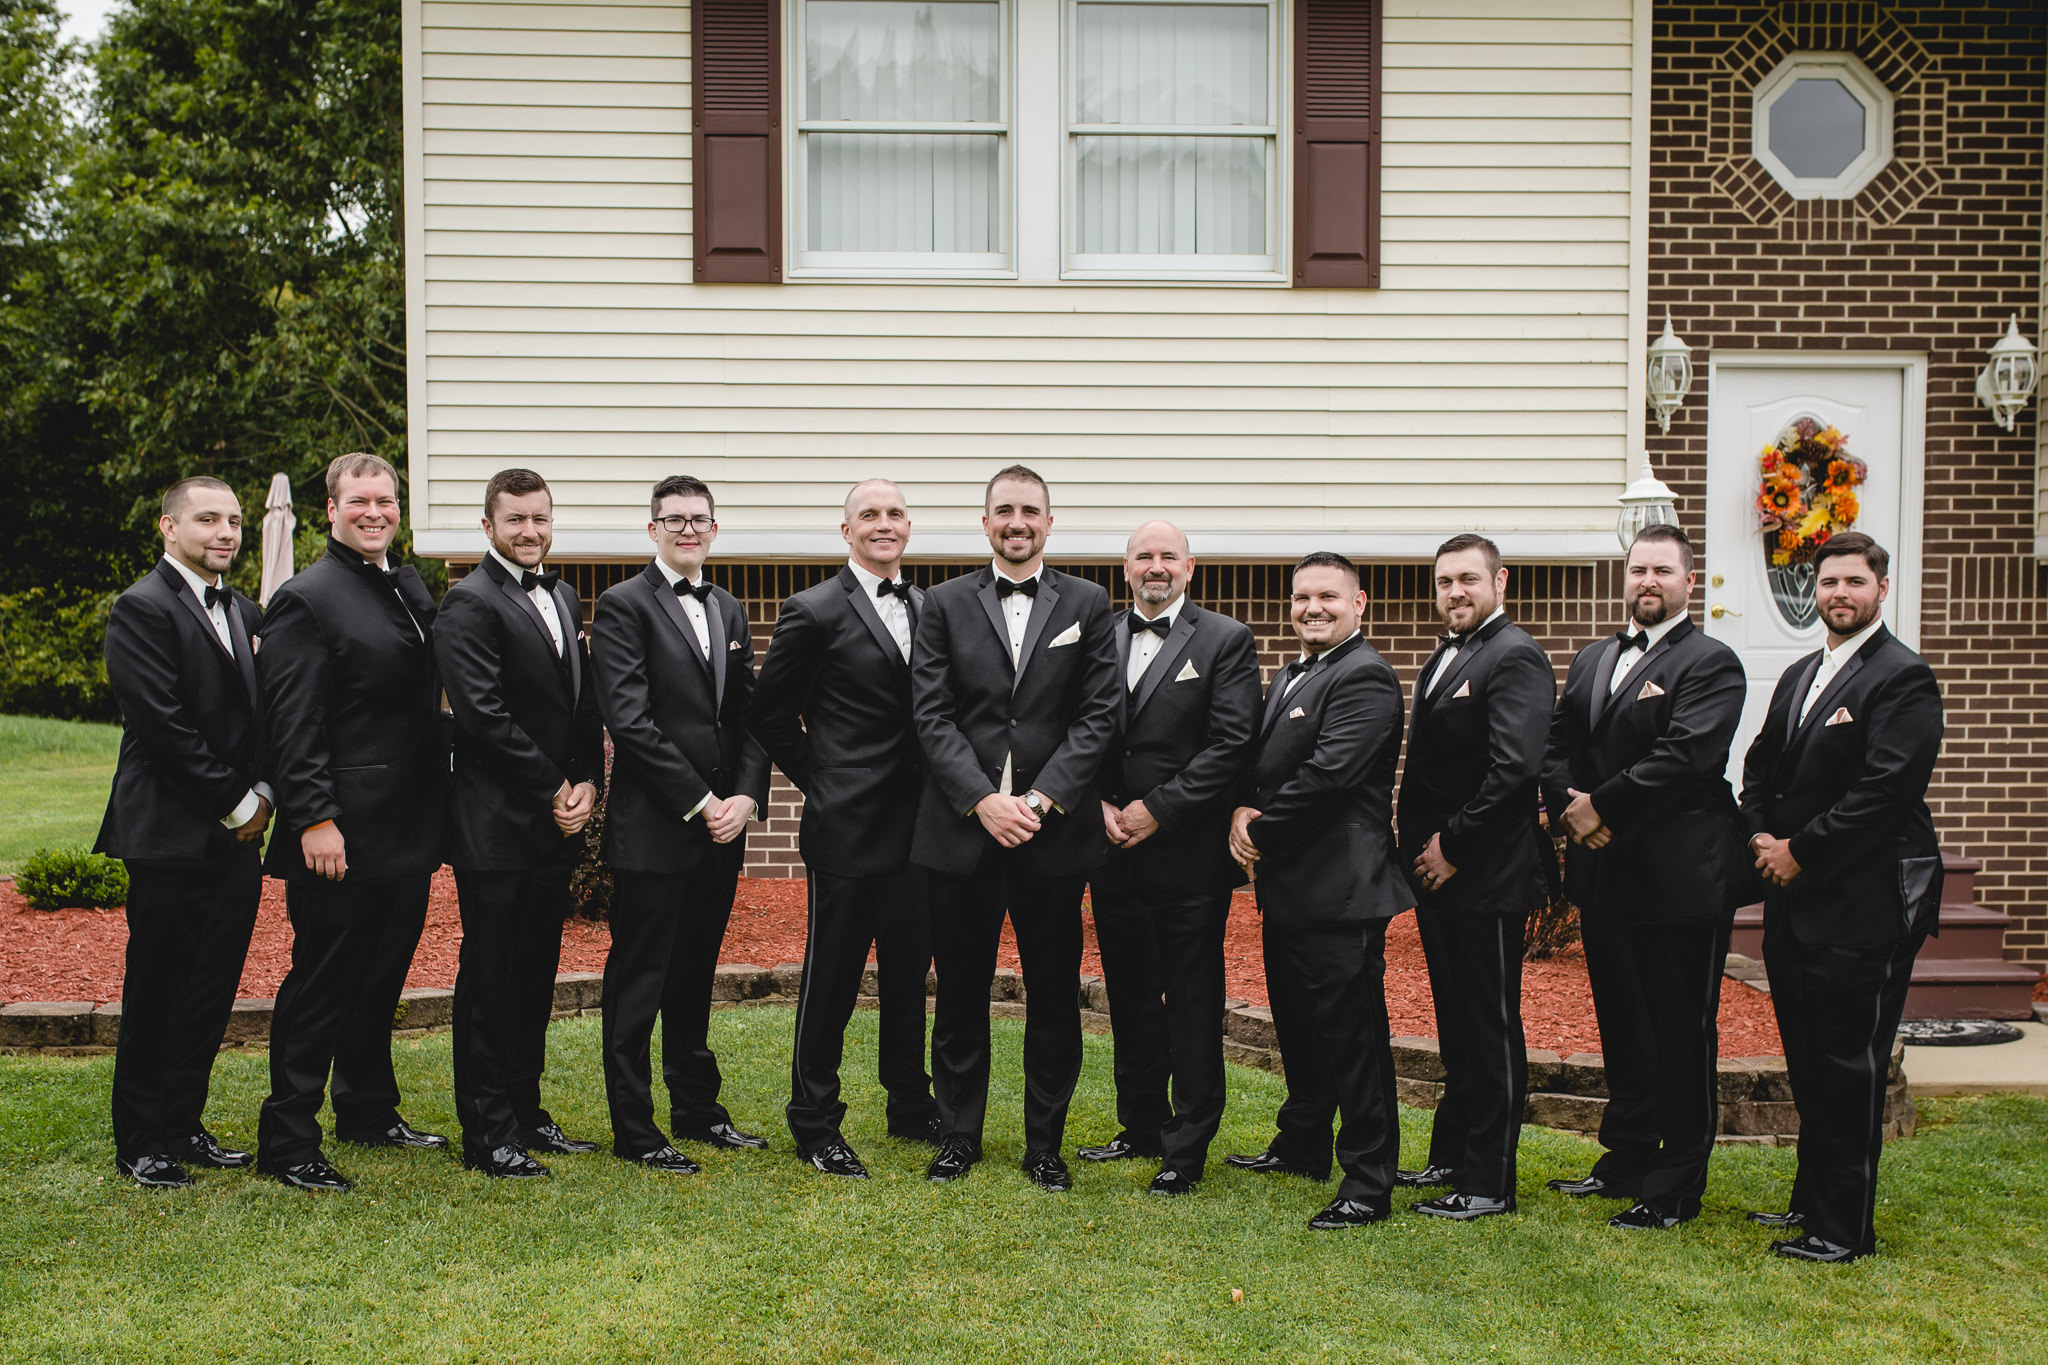 Groomsmen pose in their Rondinelli tuxedos before a Gathering Place at Darlington Lake wedding